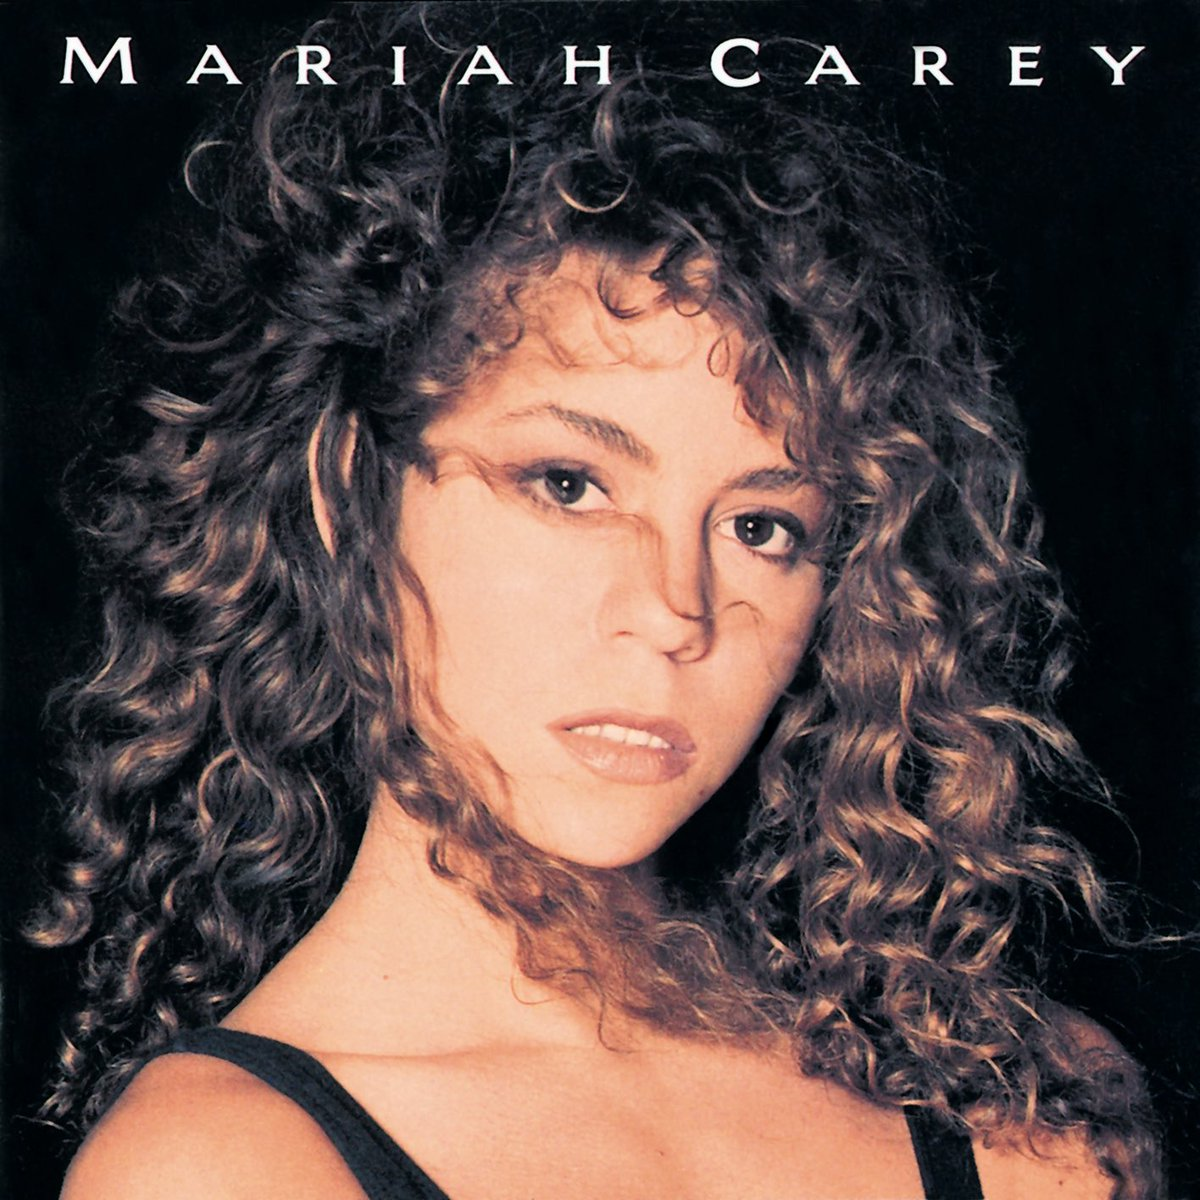 29 years ago today, @MariahCarey released her self-titled debut album. The mega-success went 9x Platinum topping the charts for 11 consecutive weeks!  <br>http://pic.twitter.com/VHbxXNt6kk